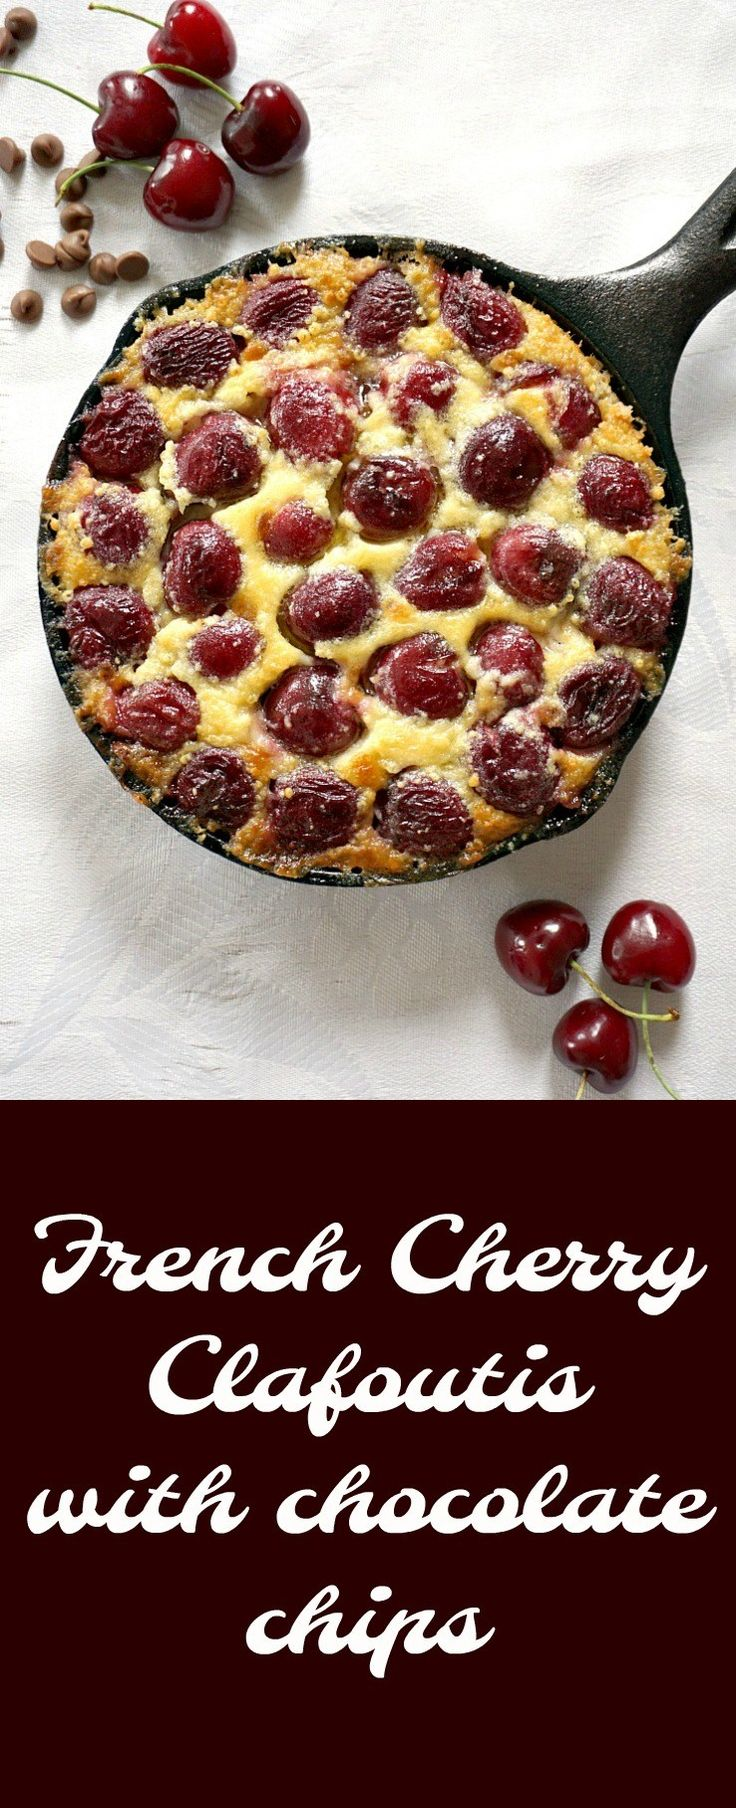 French Cherry Clafoutis recipe with chocolate chips, one of those quick easy desserts that never fail to impress.